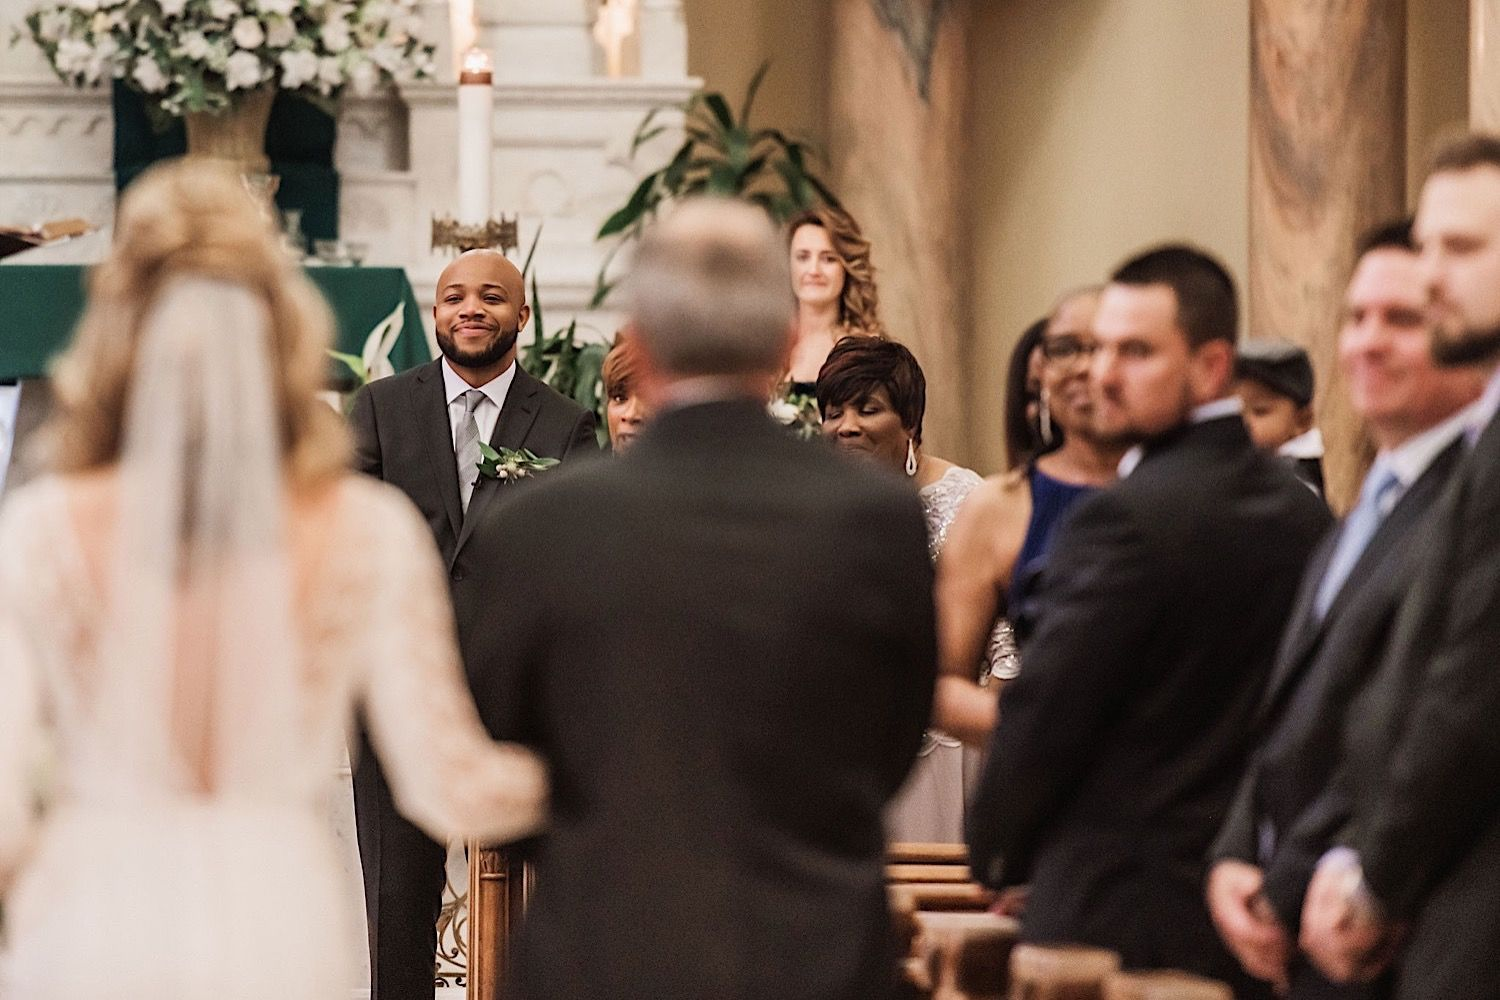 Groom seeing his bride for the first time as she walks down the aisle